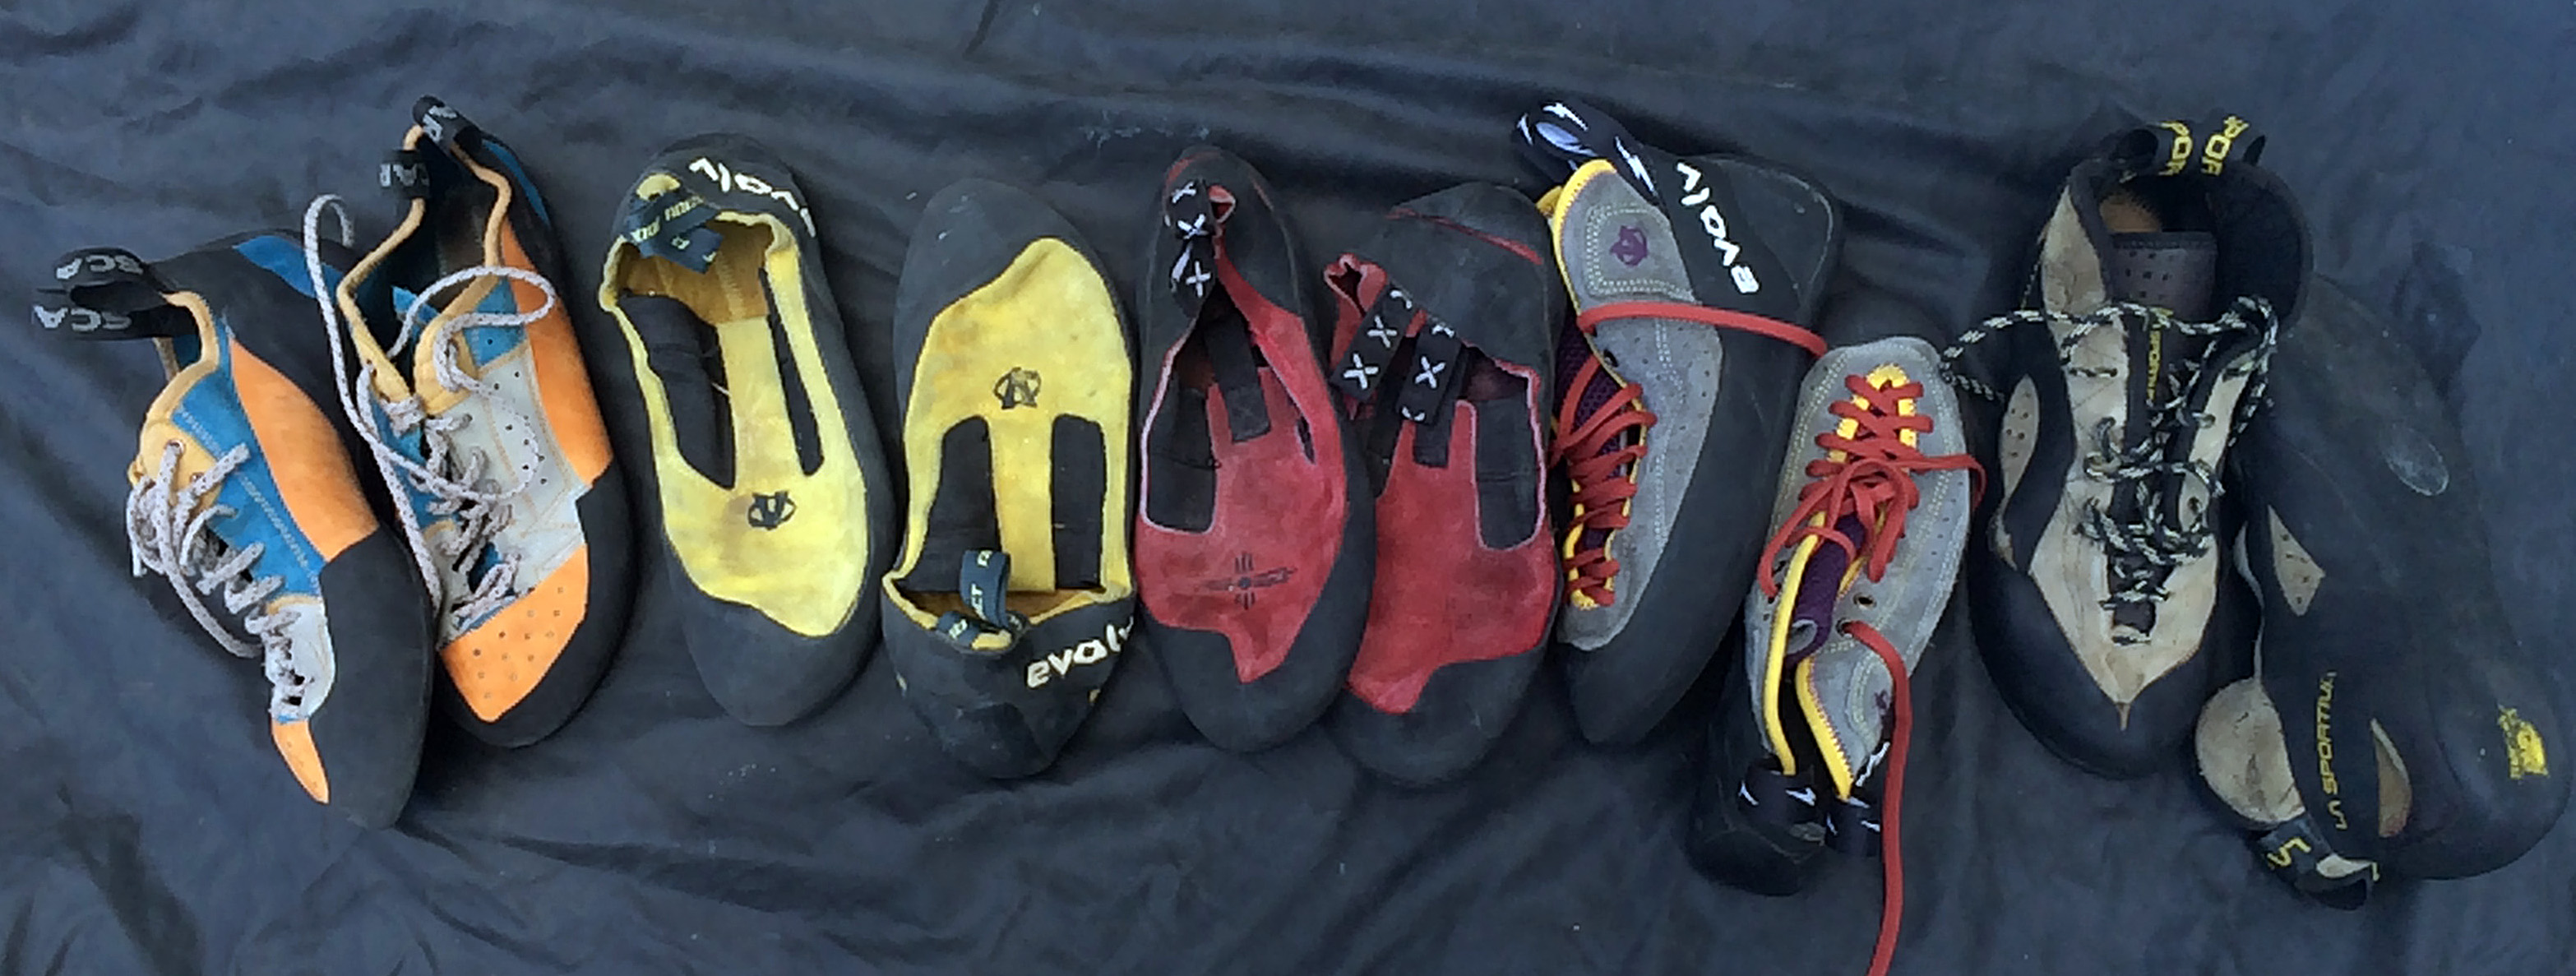 Comparison Review: Crack Climbing Shoes